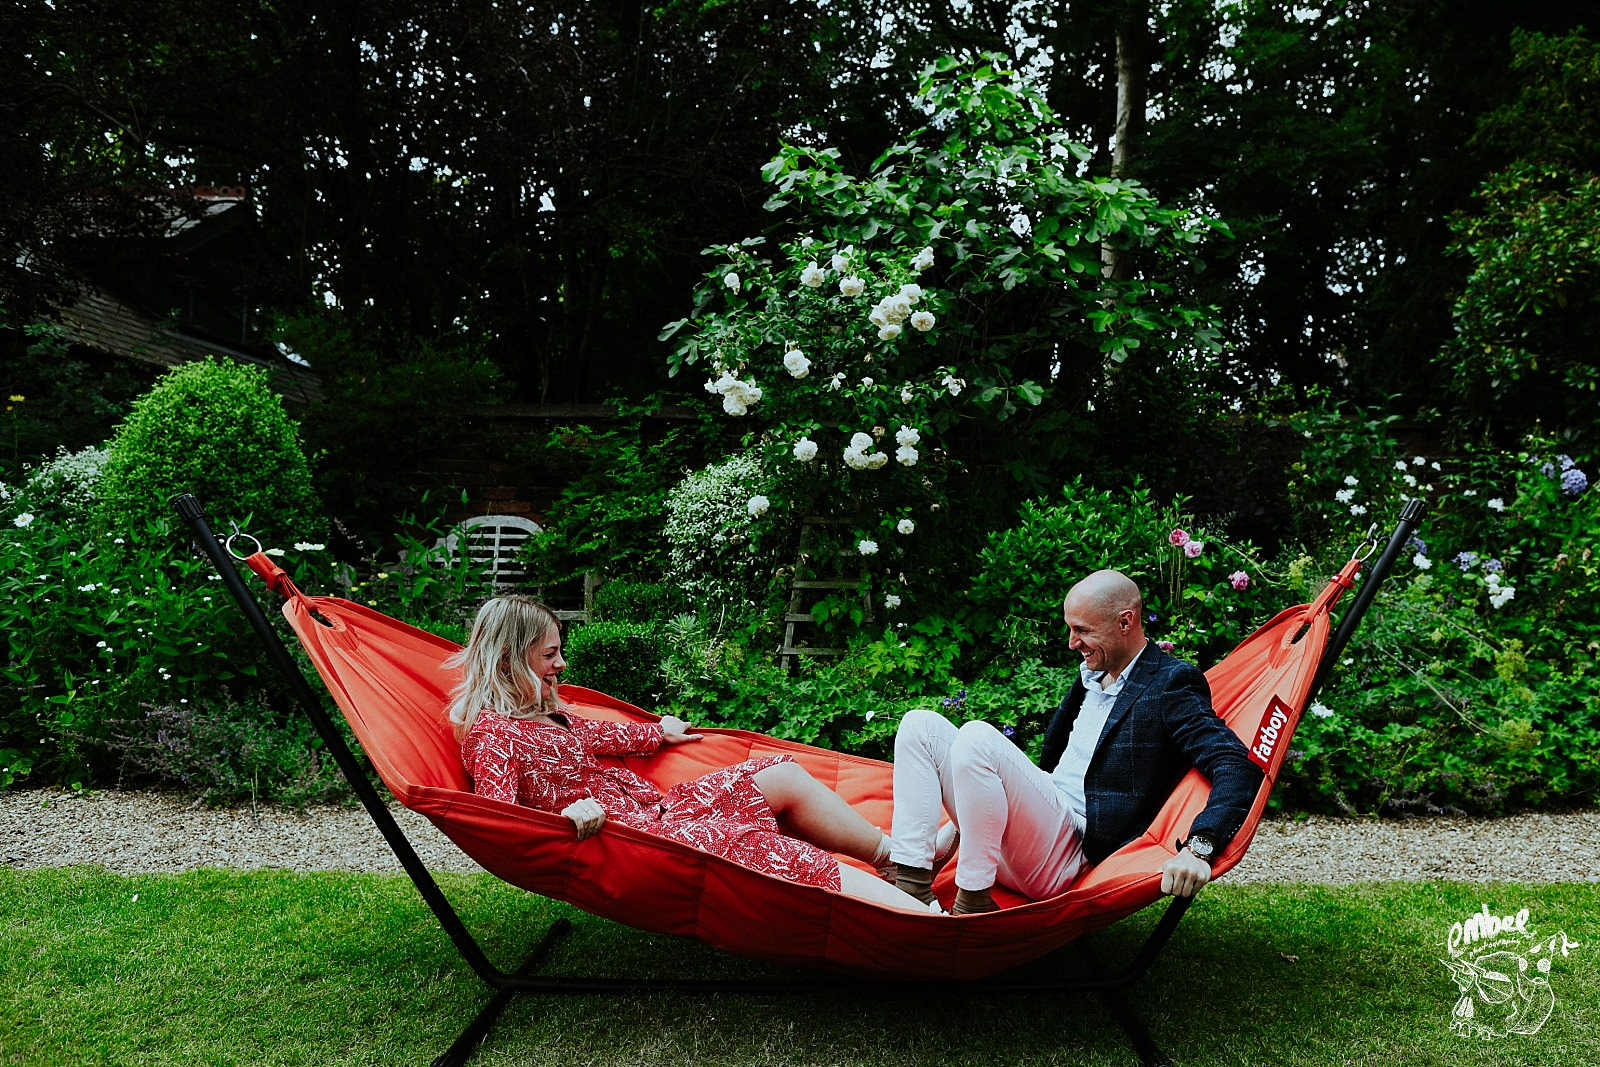 woman and man balance on a hammock